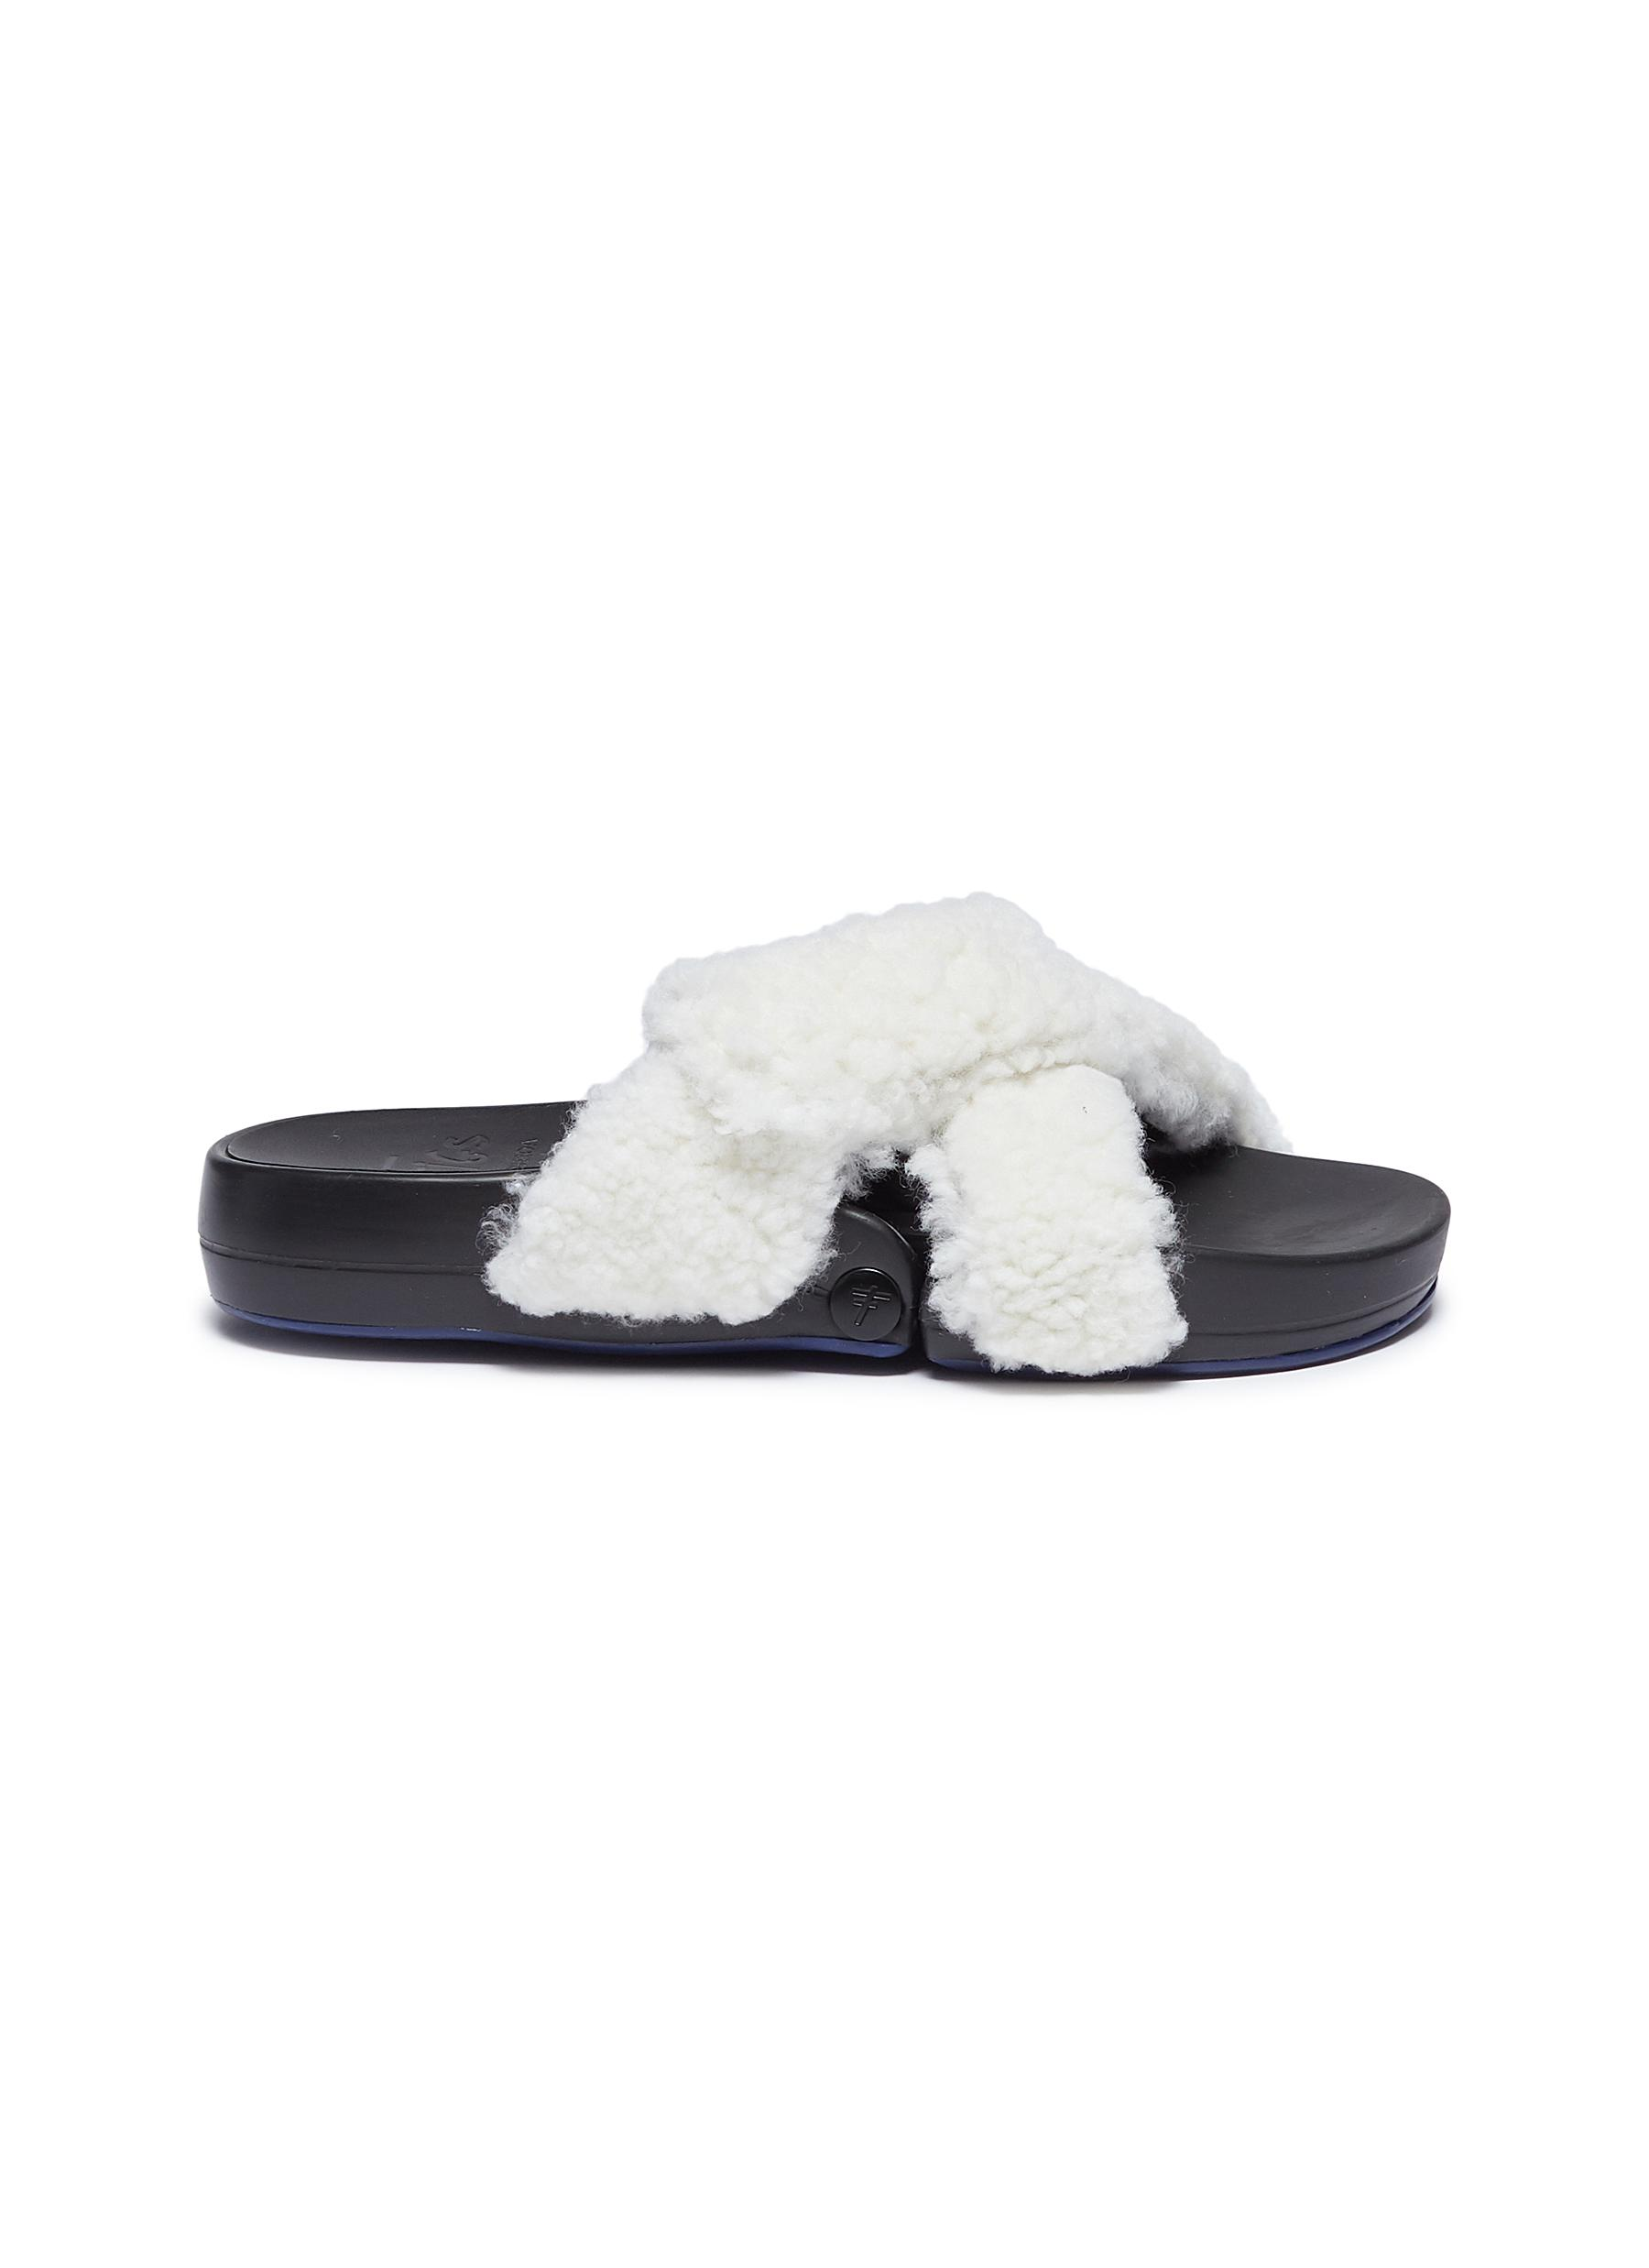 Figomatic cross strap lamb shearling slide sandals by Figs By Figueroa